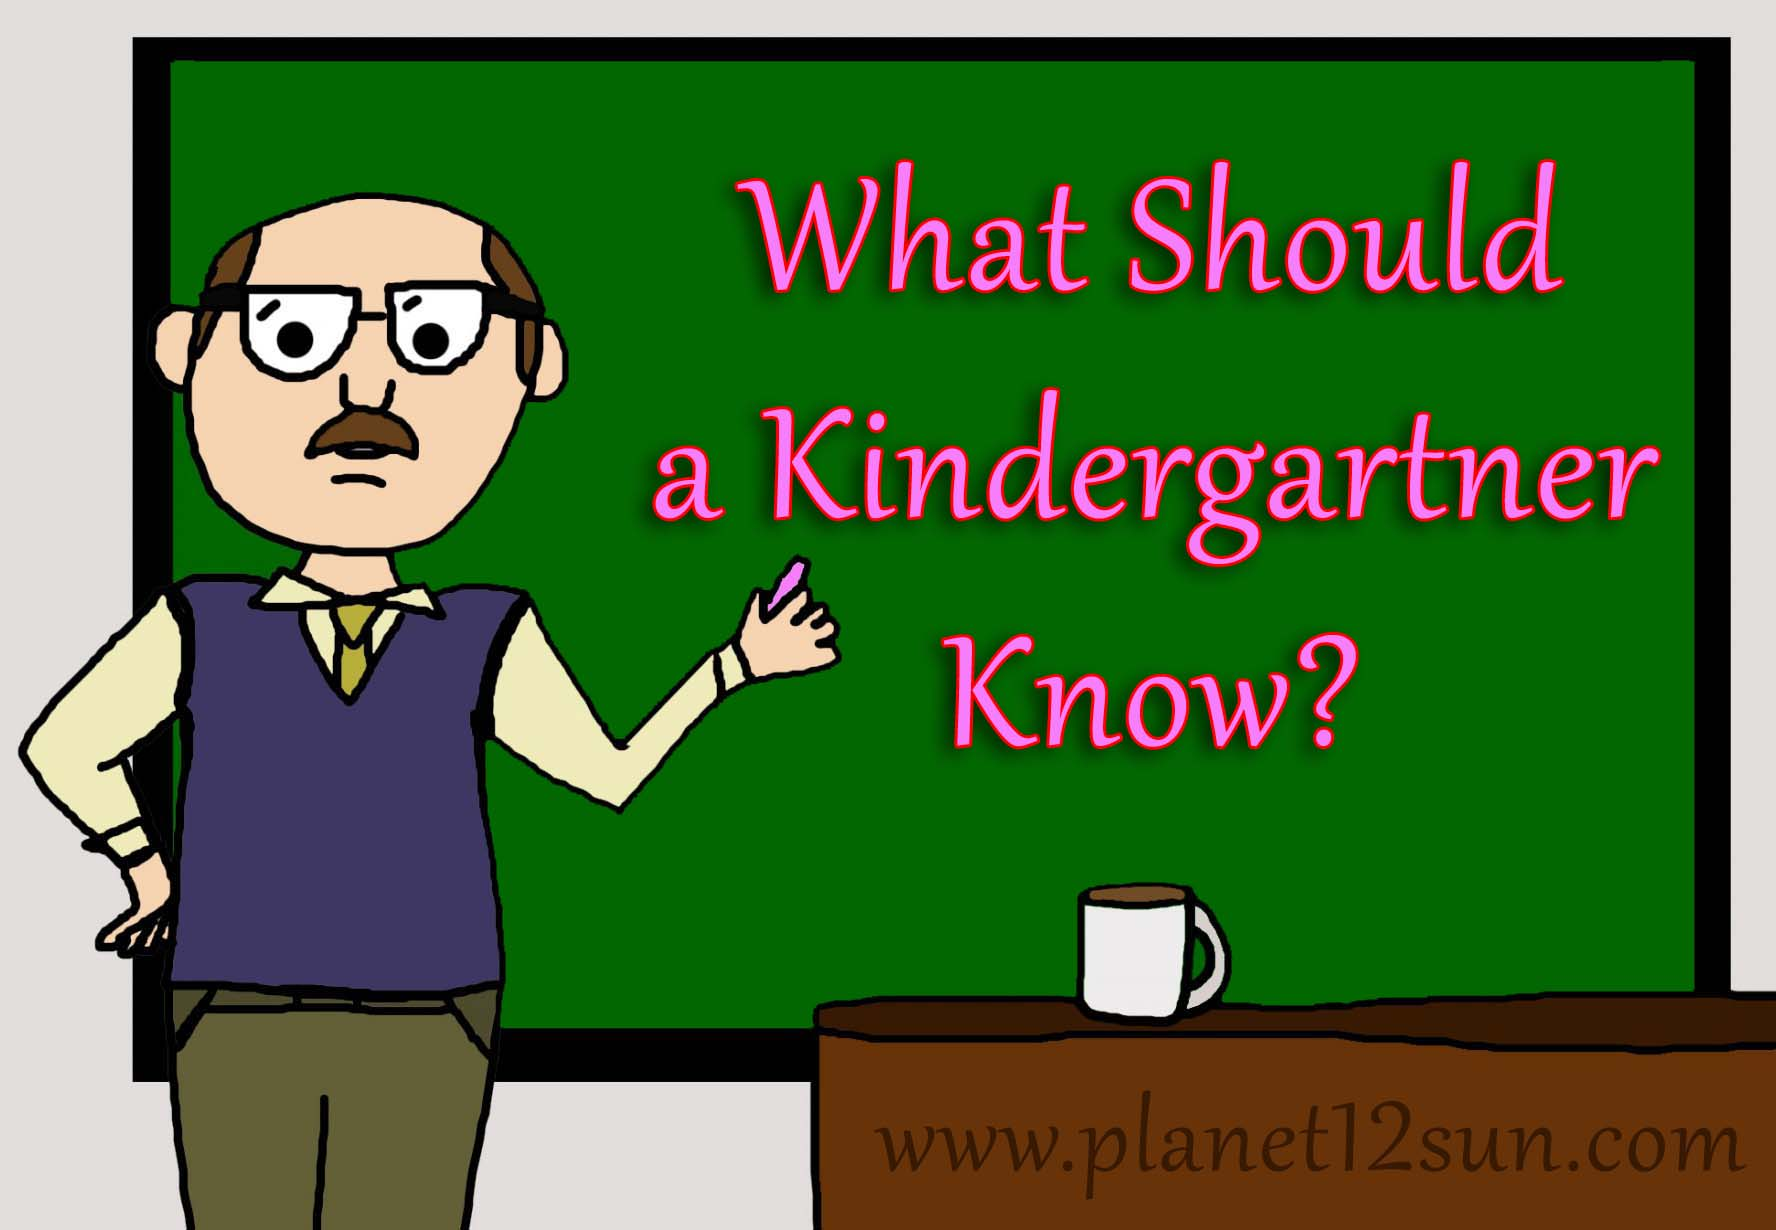 What should a kindergartner know